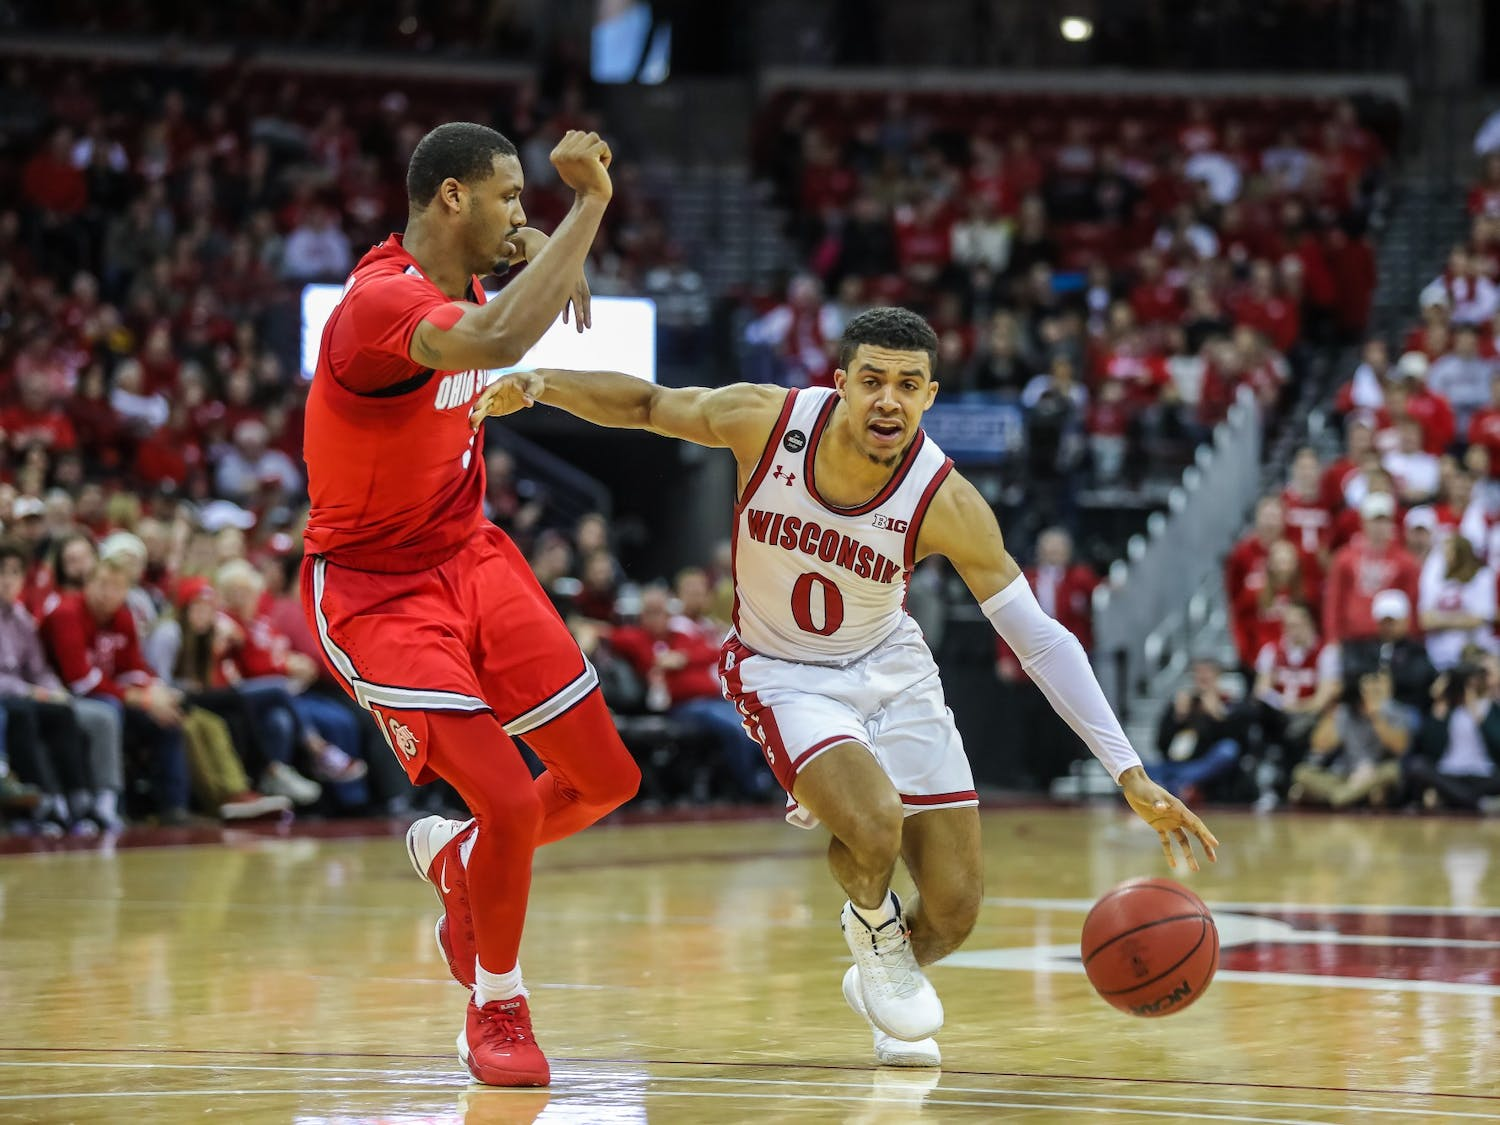 D'Mitrik Trice drives on a Buckeye defender as the Badgers take down Ohio State in the Kohl Center on Feb. 9, 2020.